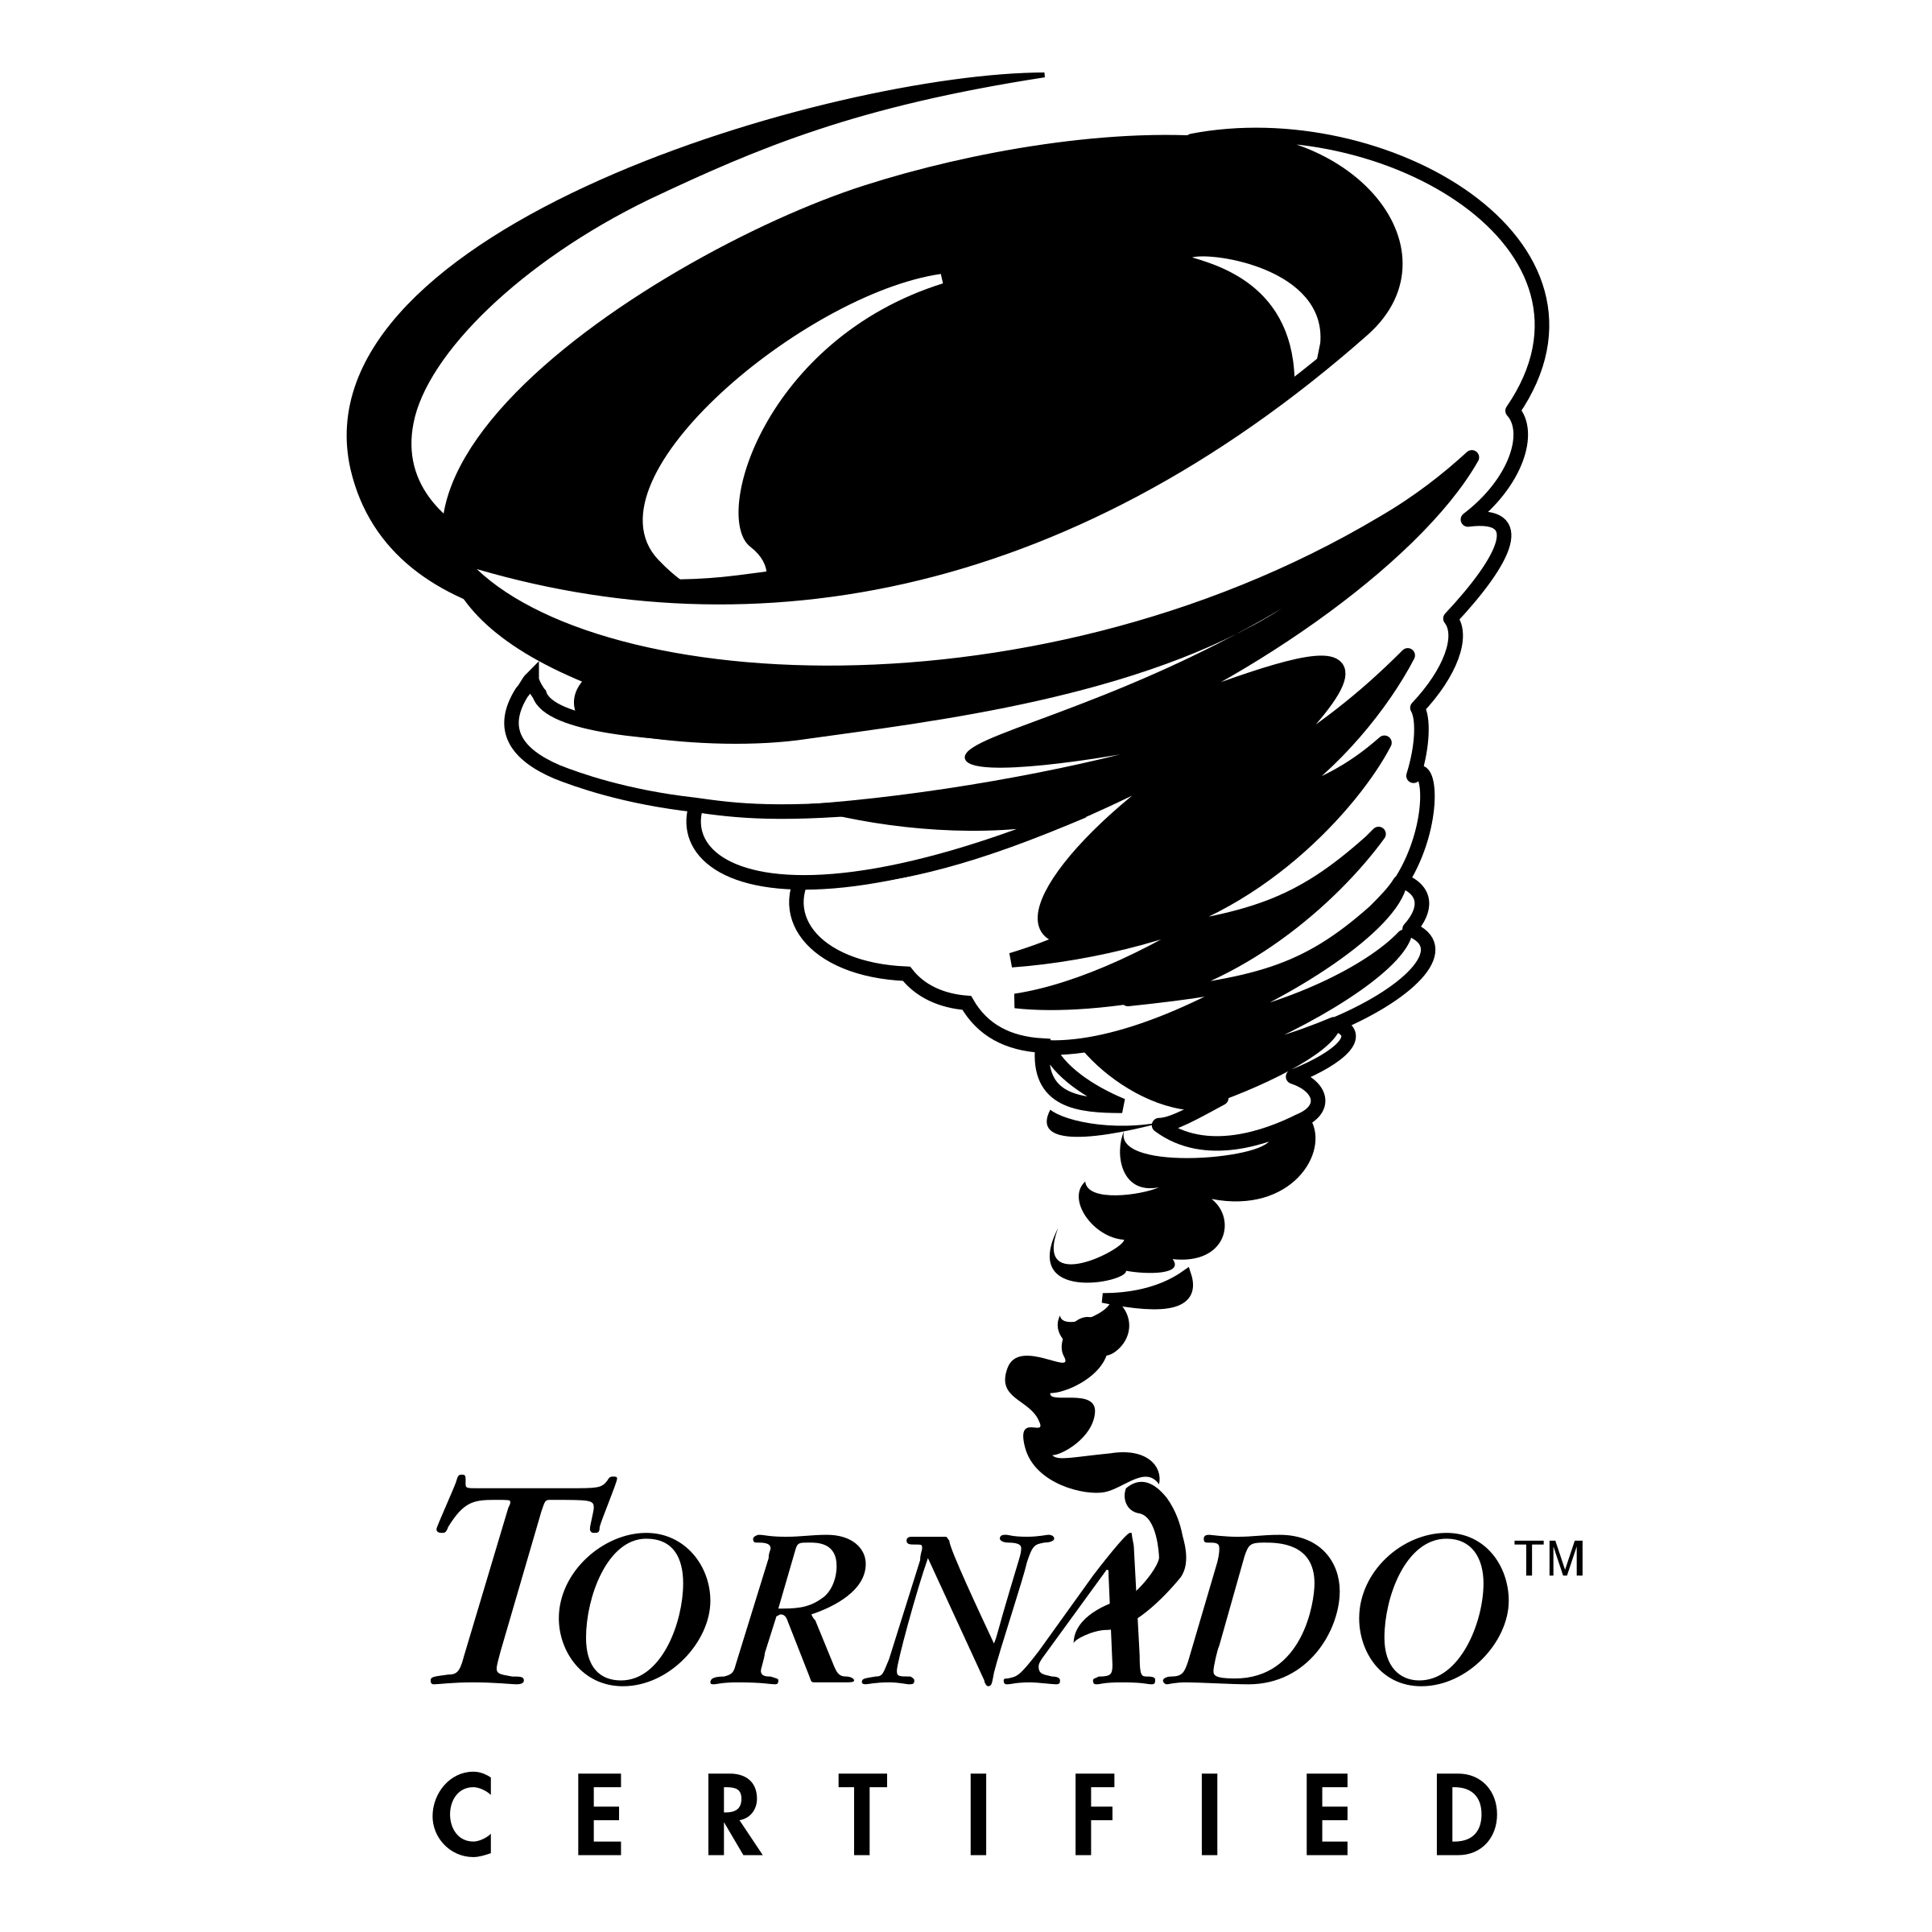 Vector tornado black and white. Certified logo png transparent